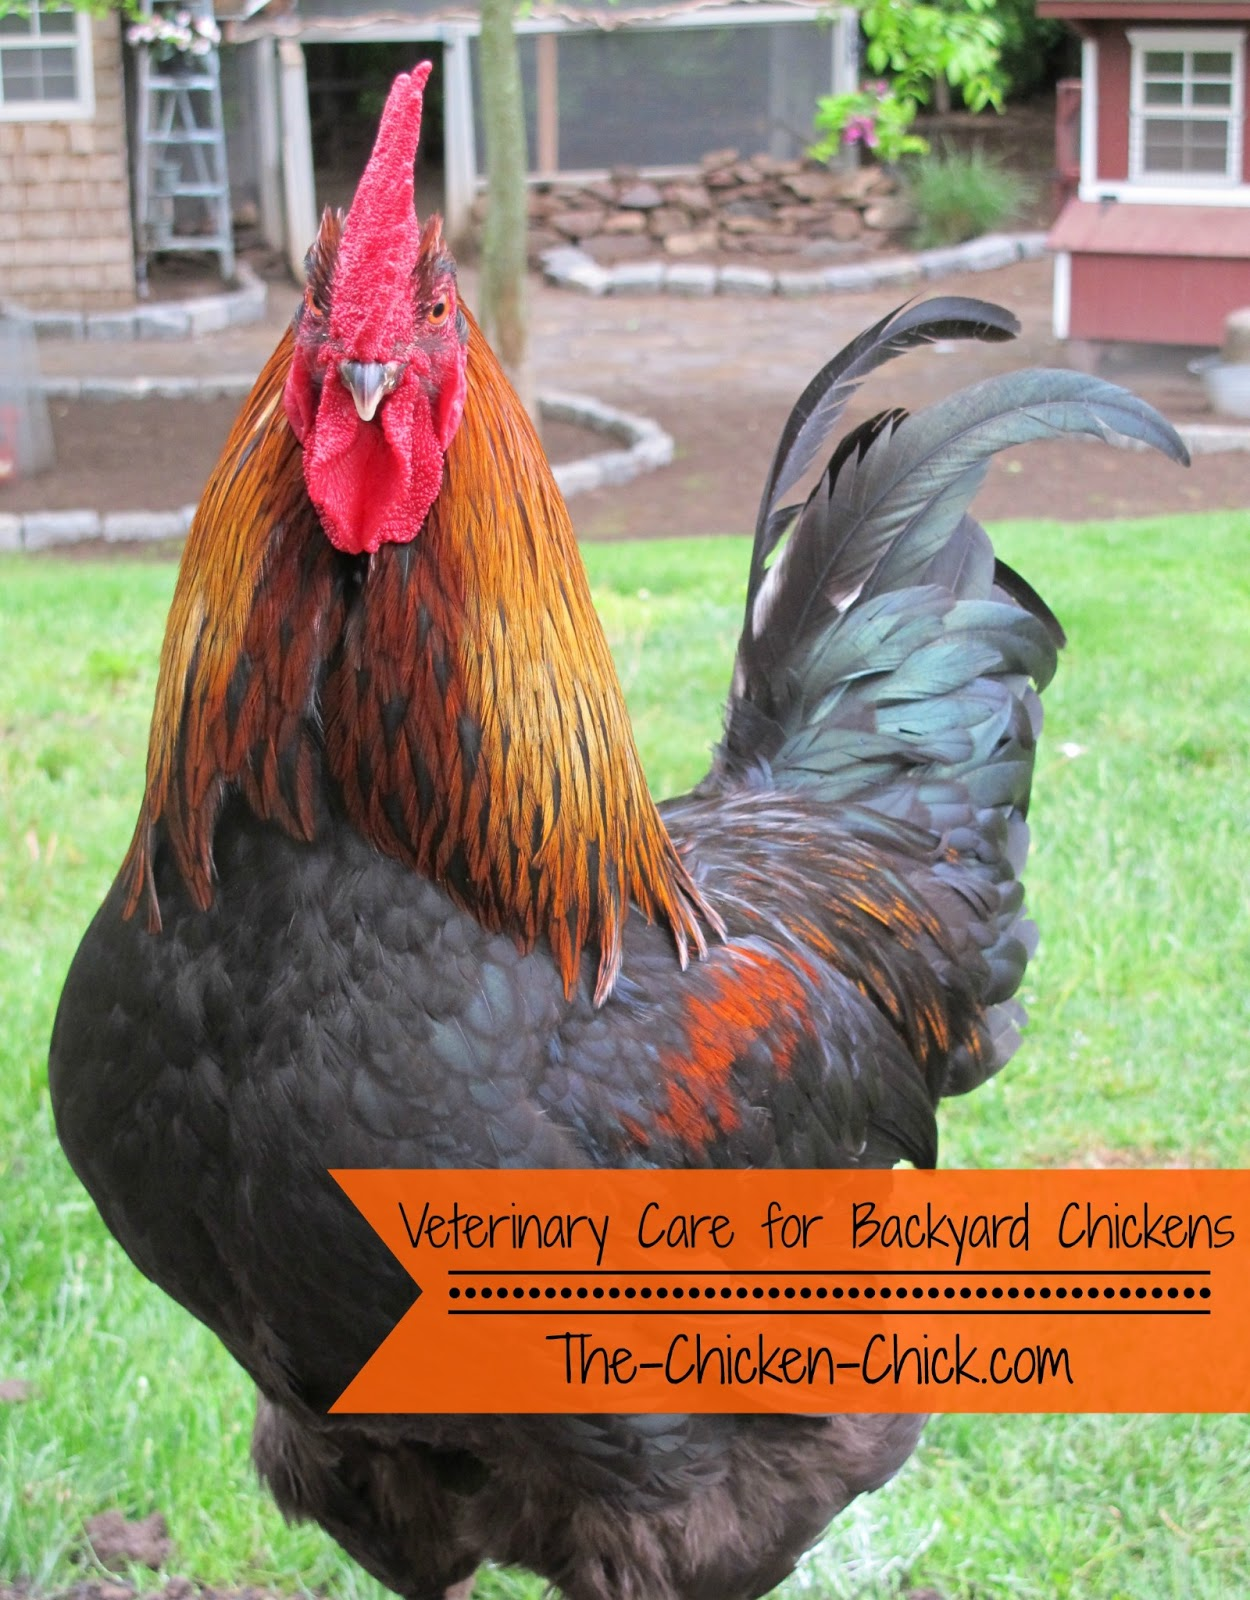 veterinary care for backyard chickens a dialogue that must begin the chicken chick